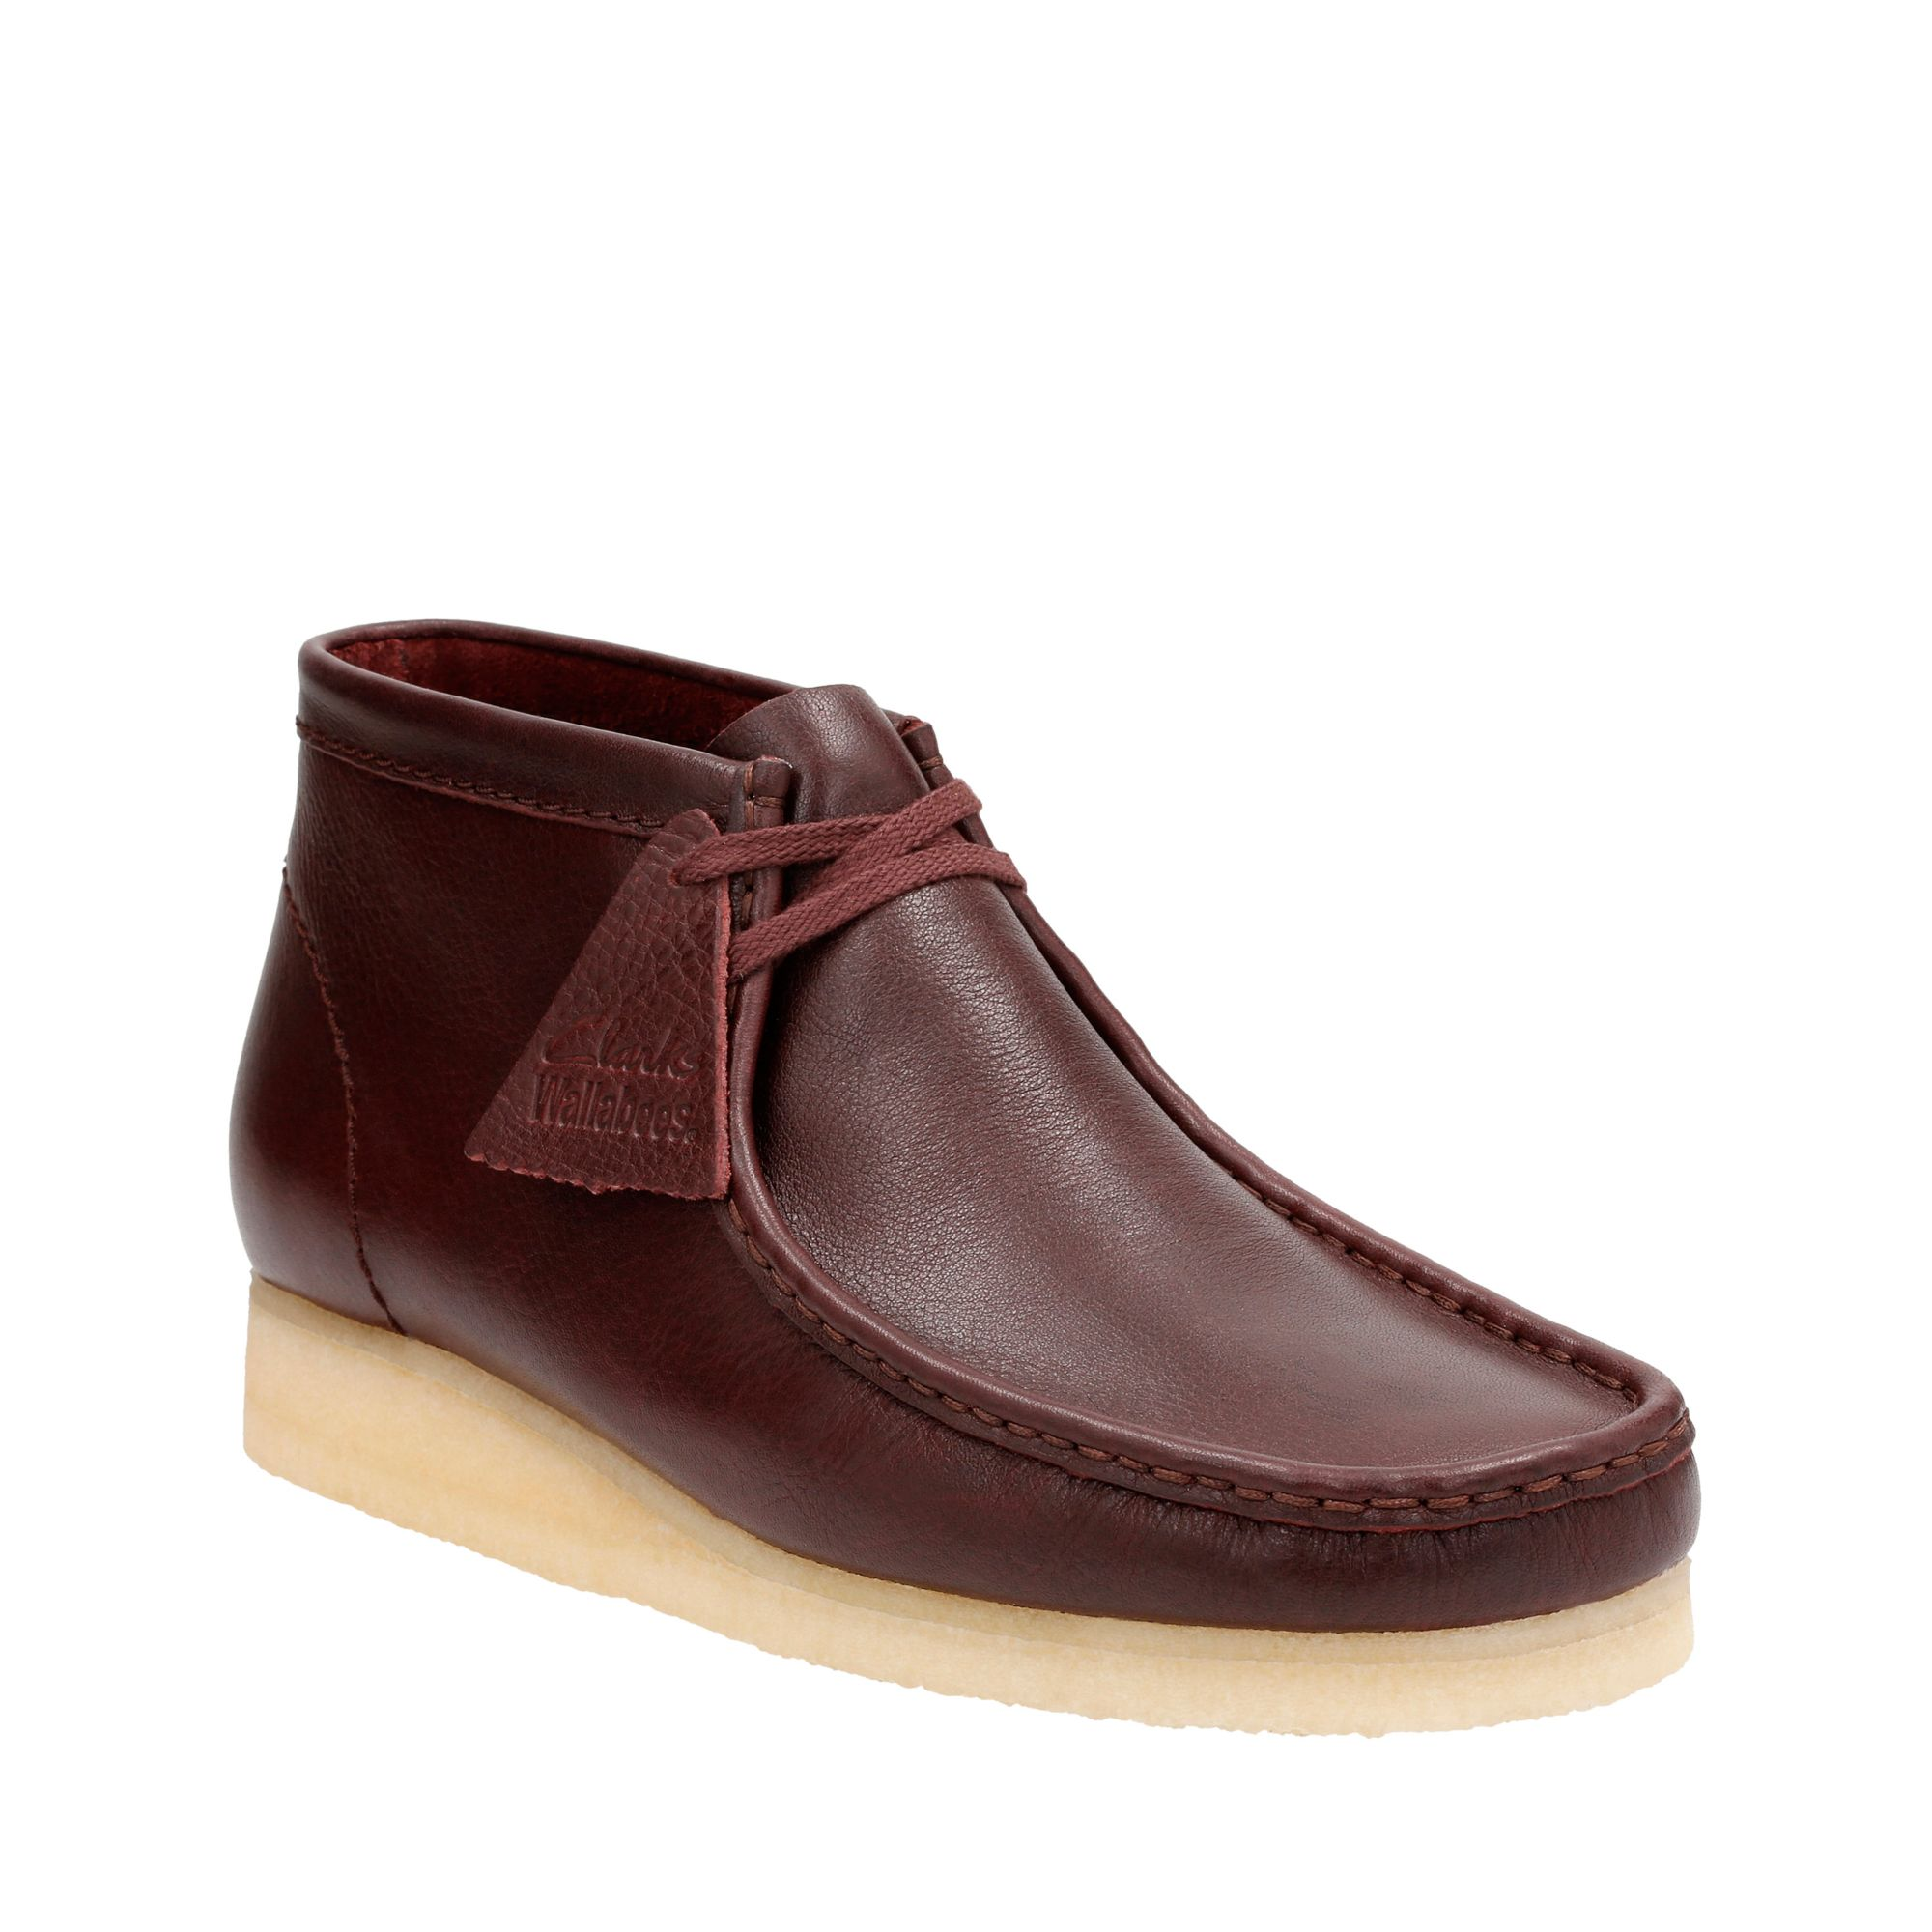 Clarks Wallabee Men's Boots Burgundy Tumbled/Burgundy Tumbled 26125541